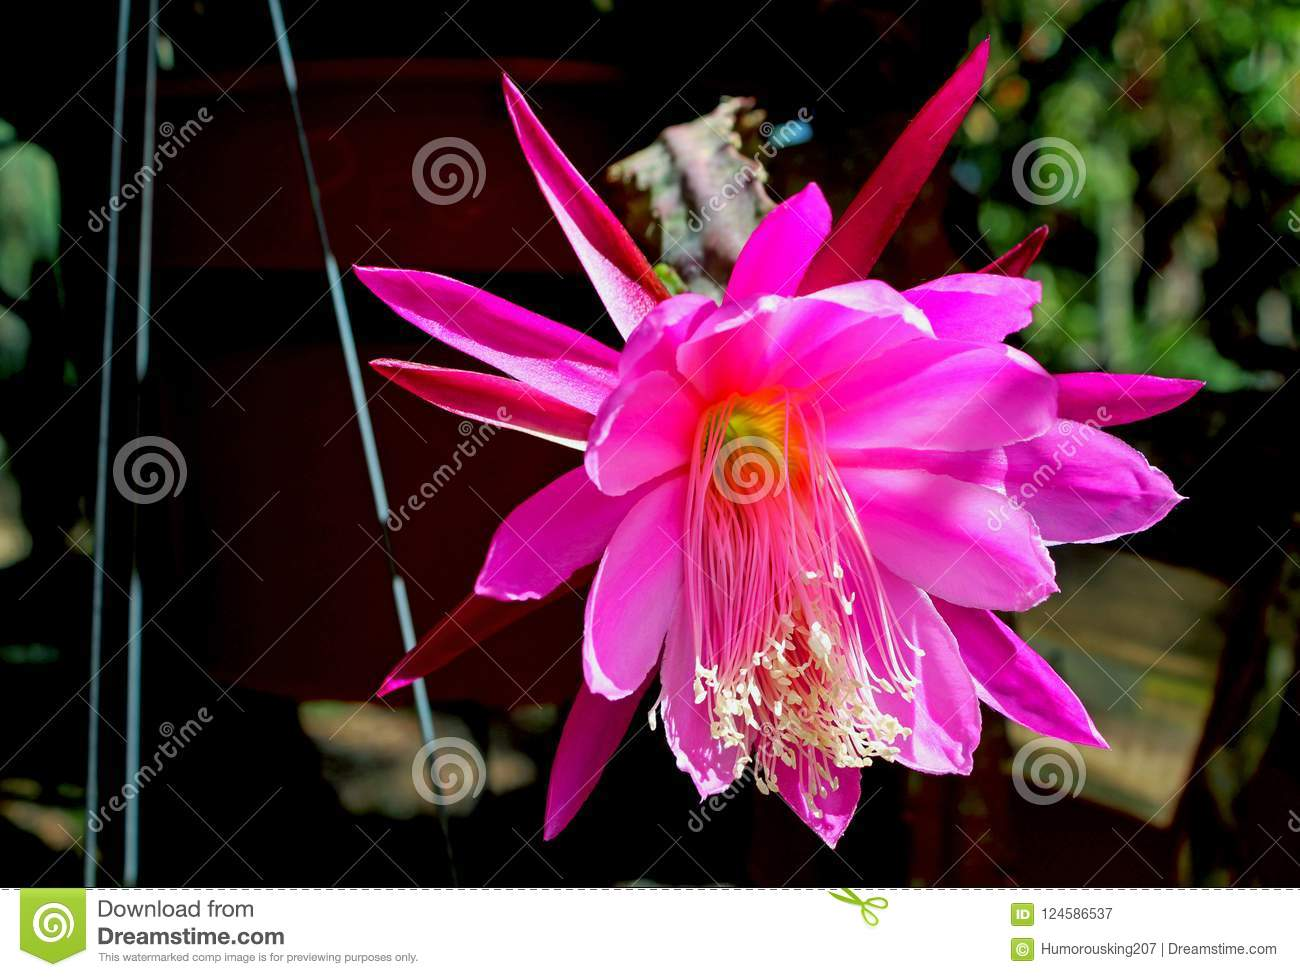 Pink flowers of the Night-blooming cereus